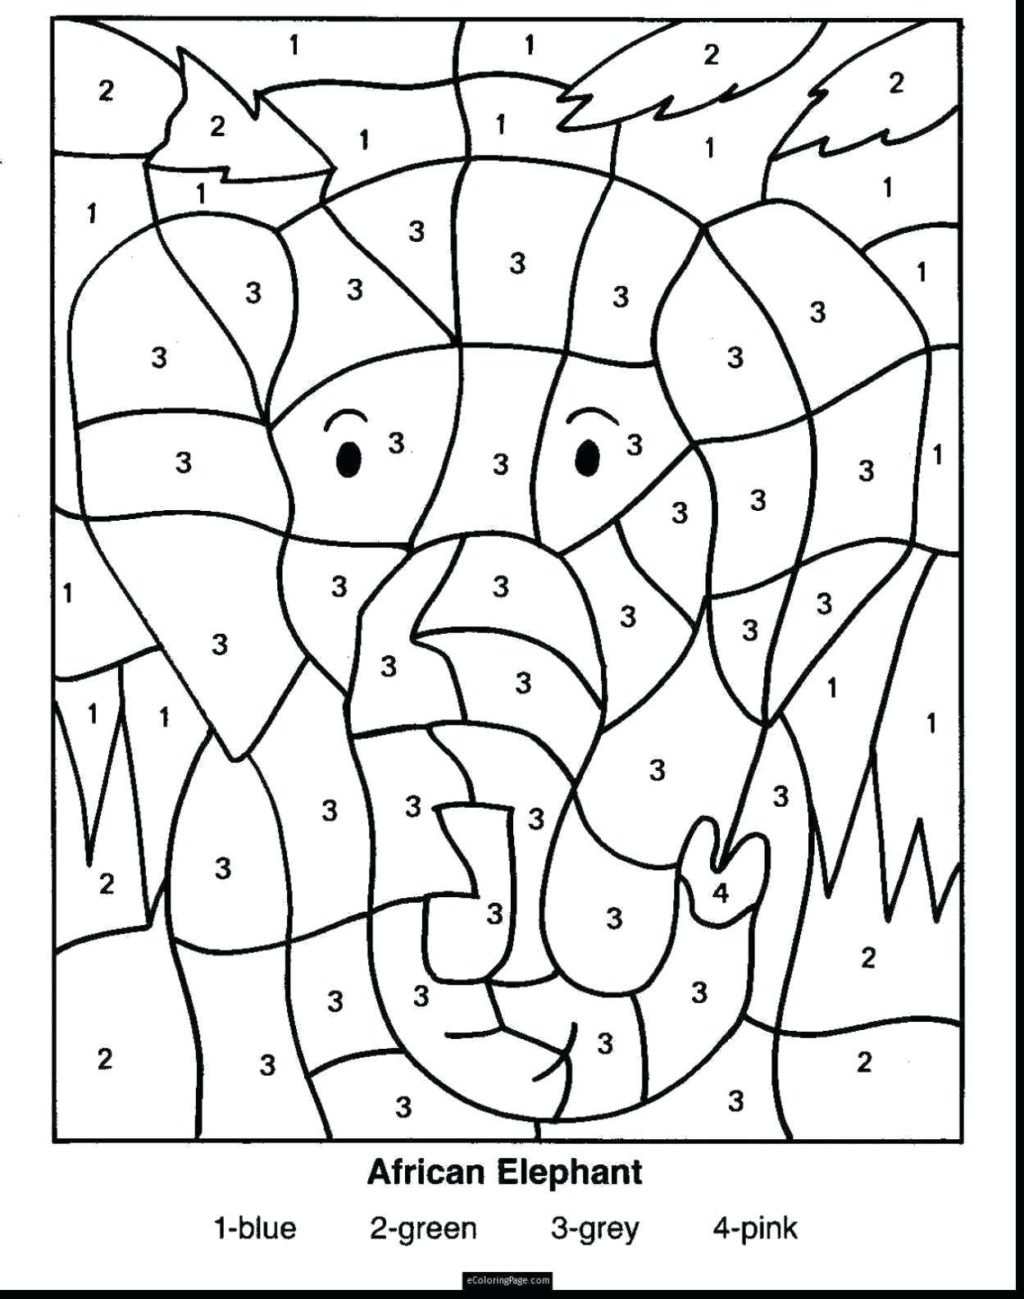 Worksheet ~ Reading Worskheets Multiplication Coloring